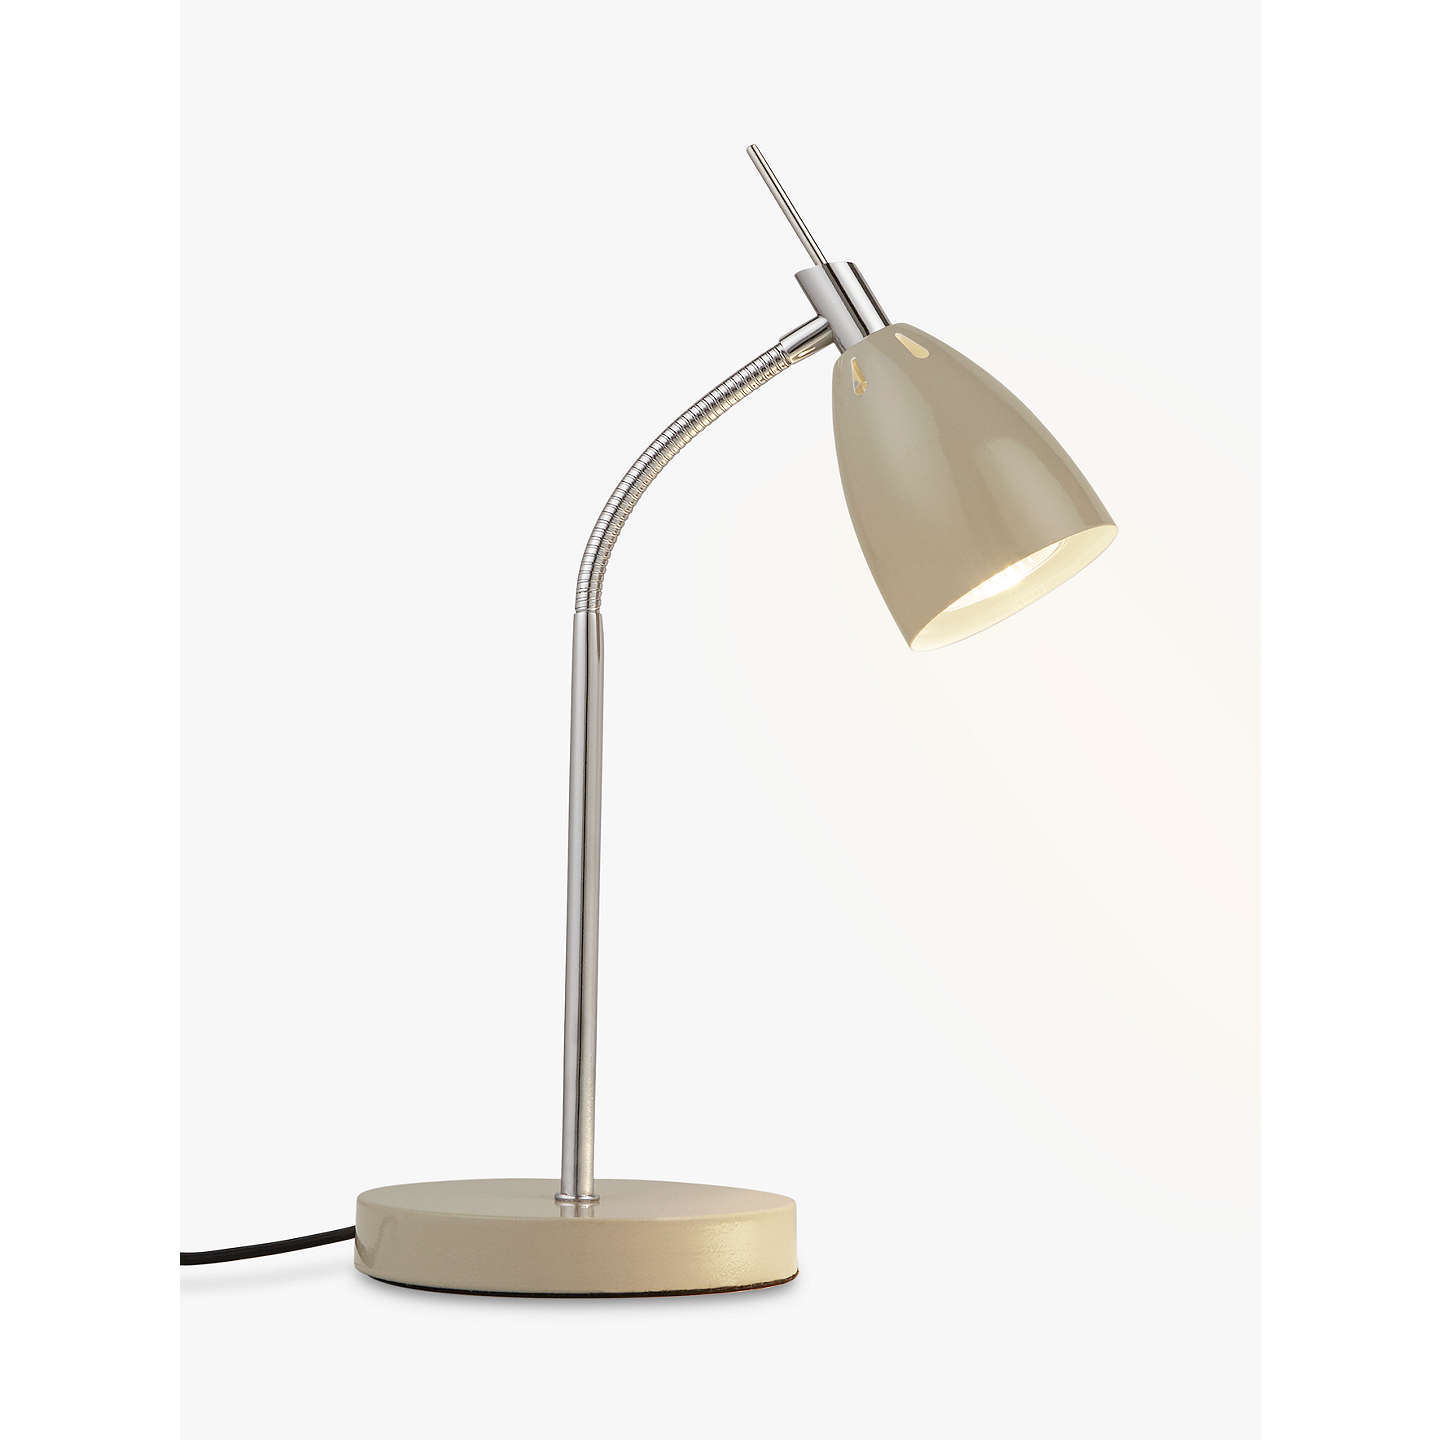 BuyJohn Lewis Neil LED Task Light, Taupe Online at johnlewis.com